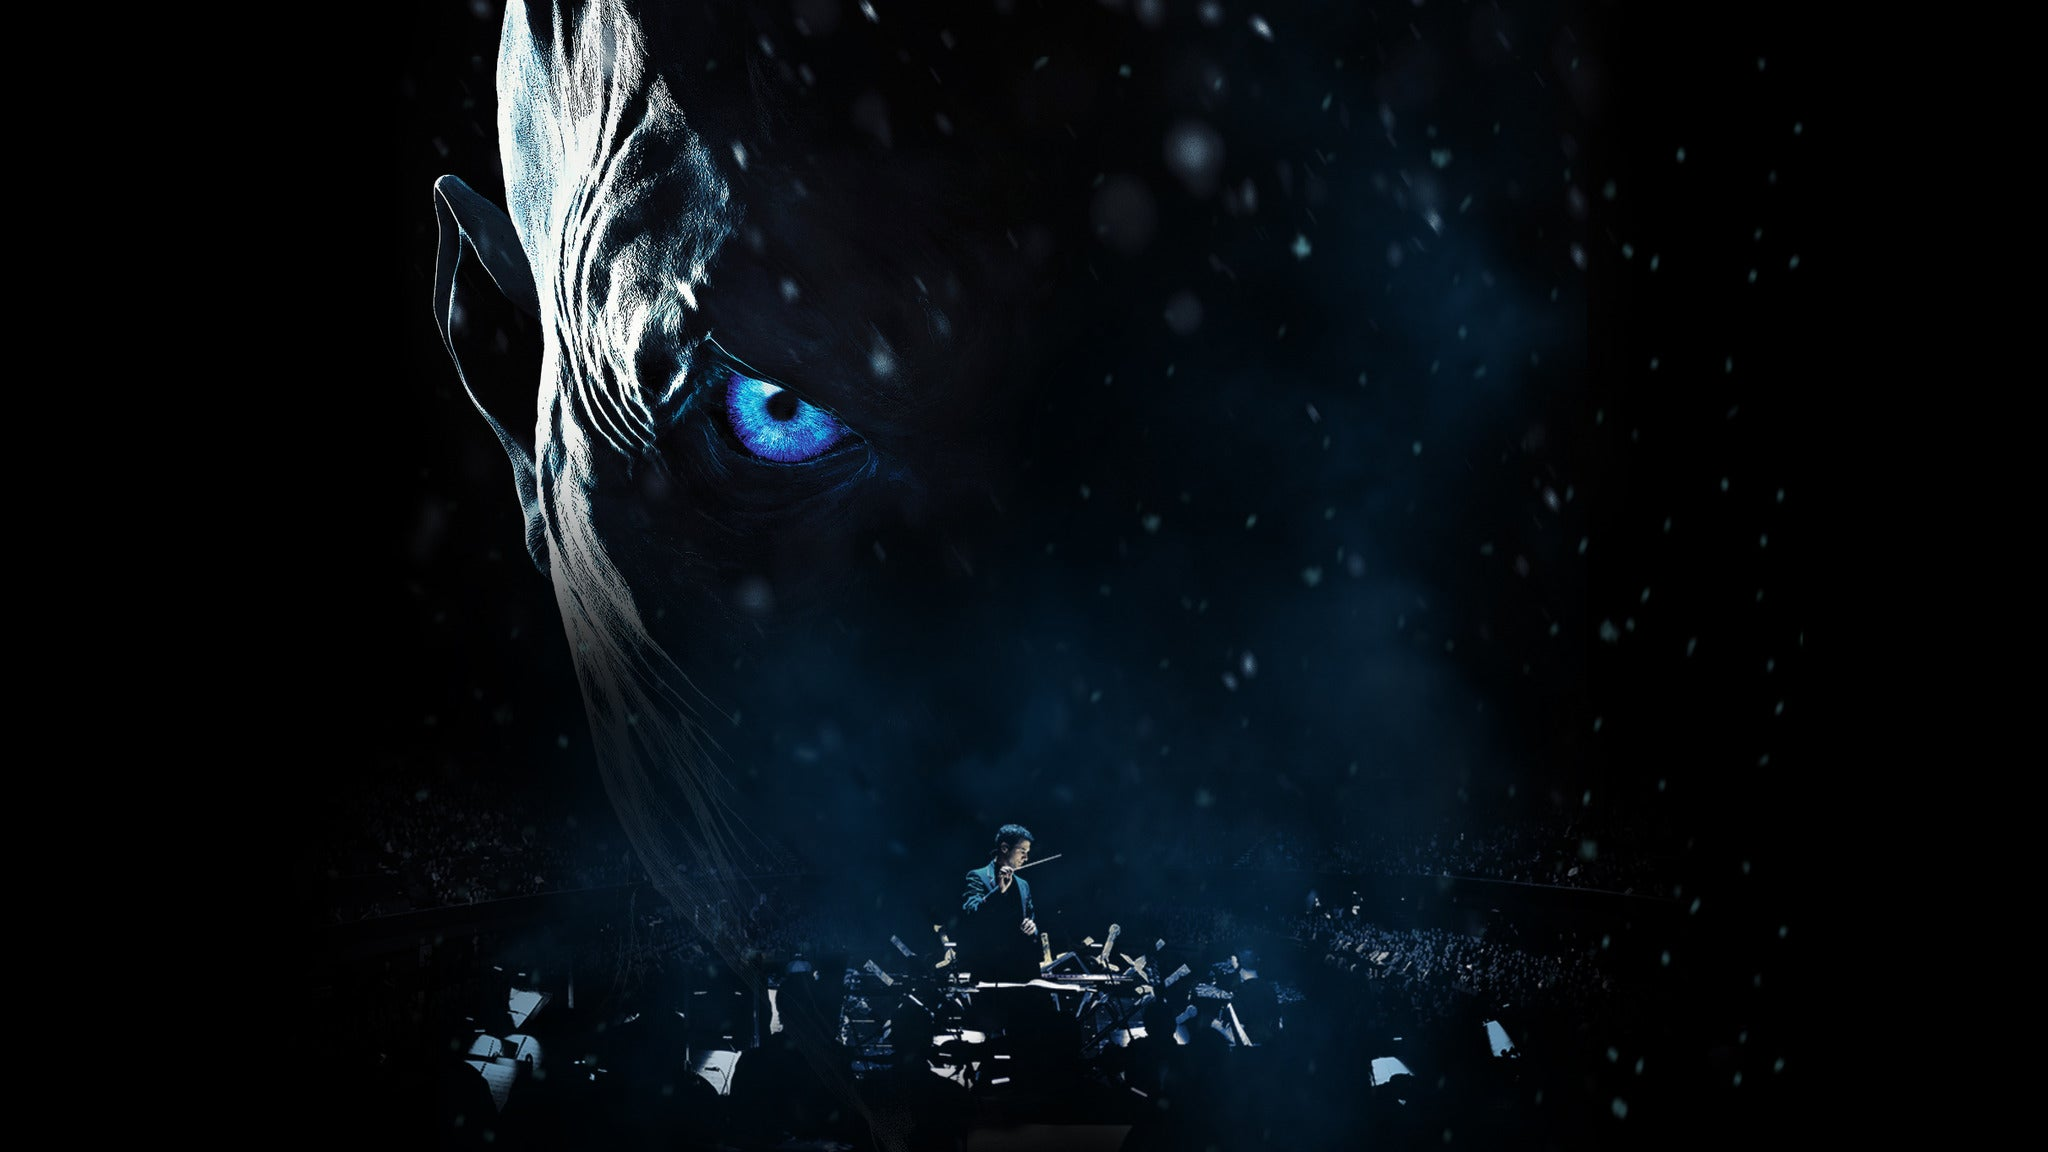 Game of Thrones Live Concert Experience at The Forum